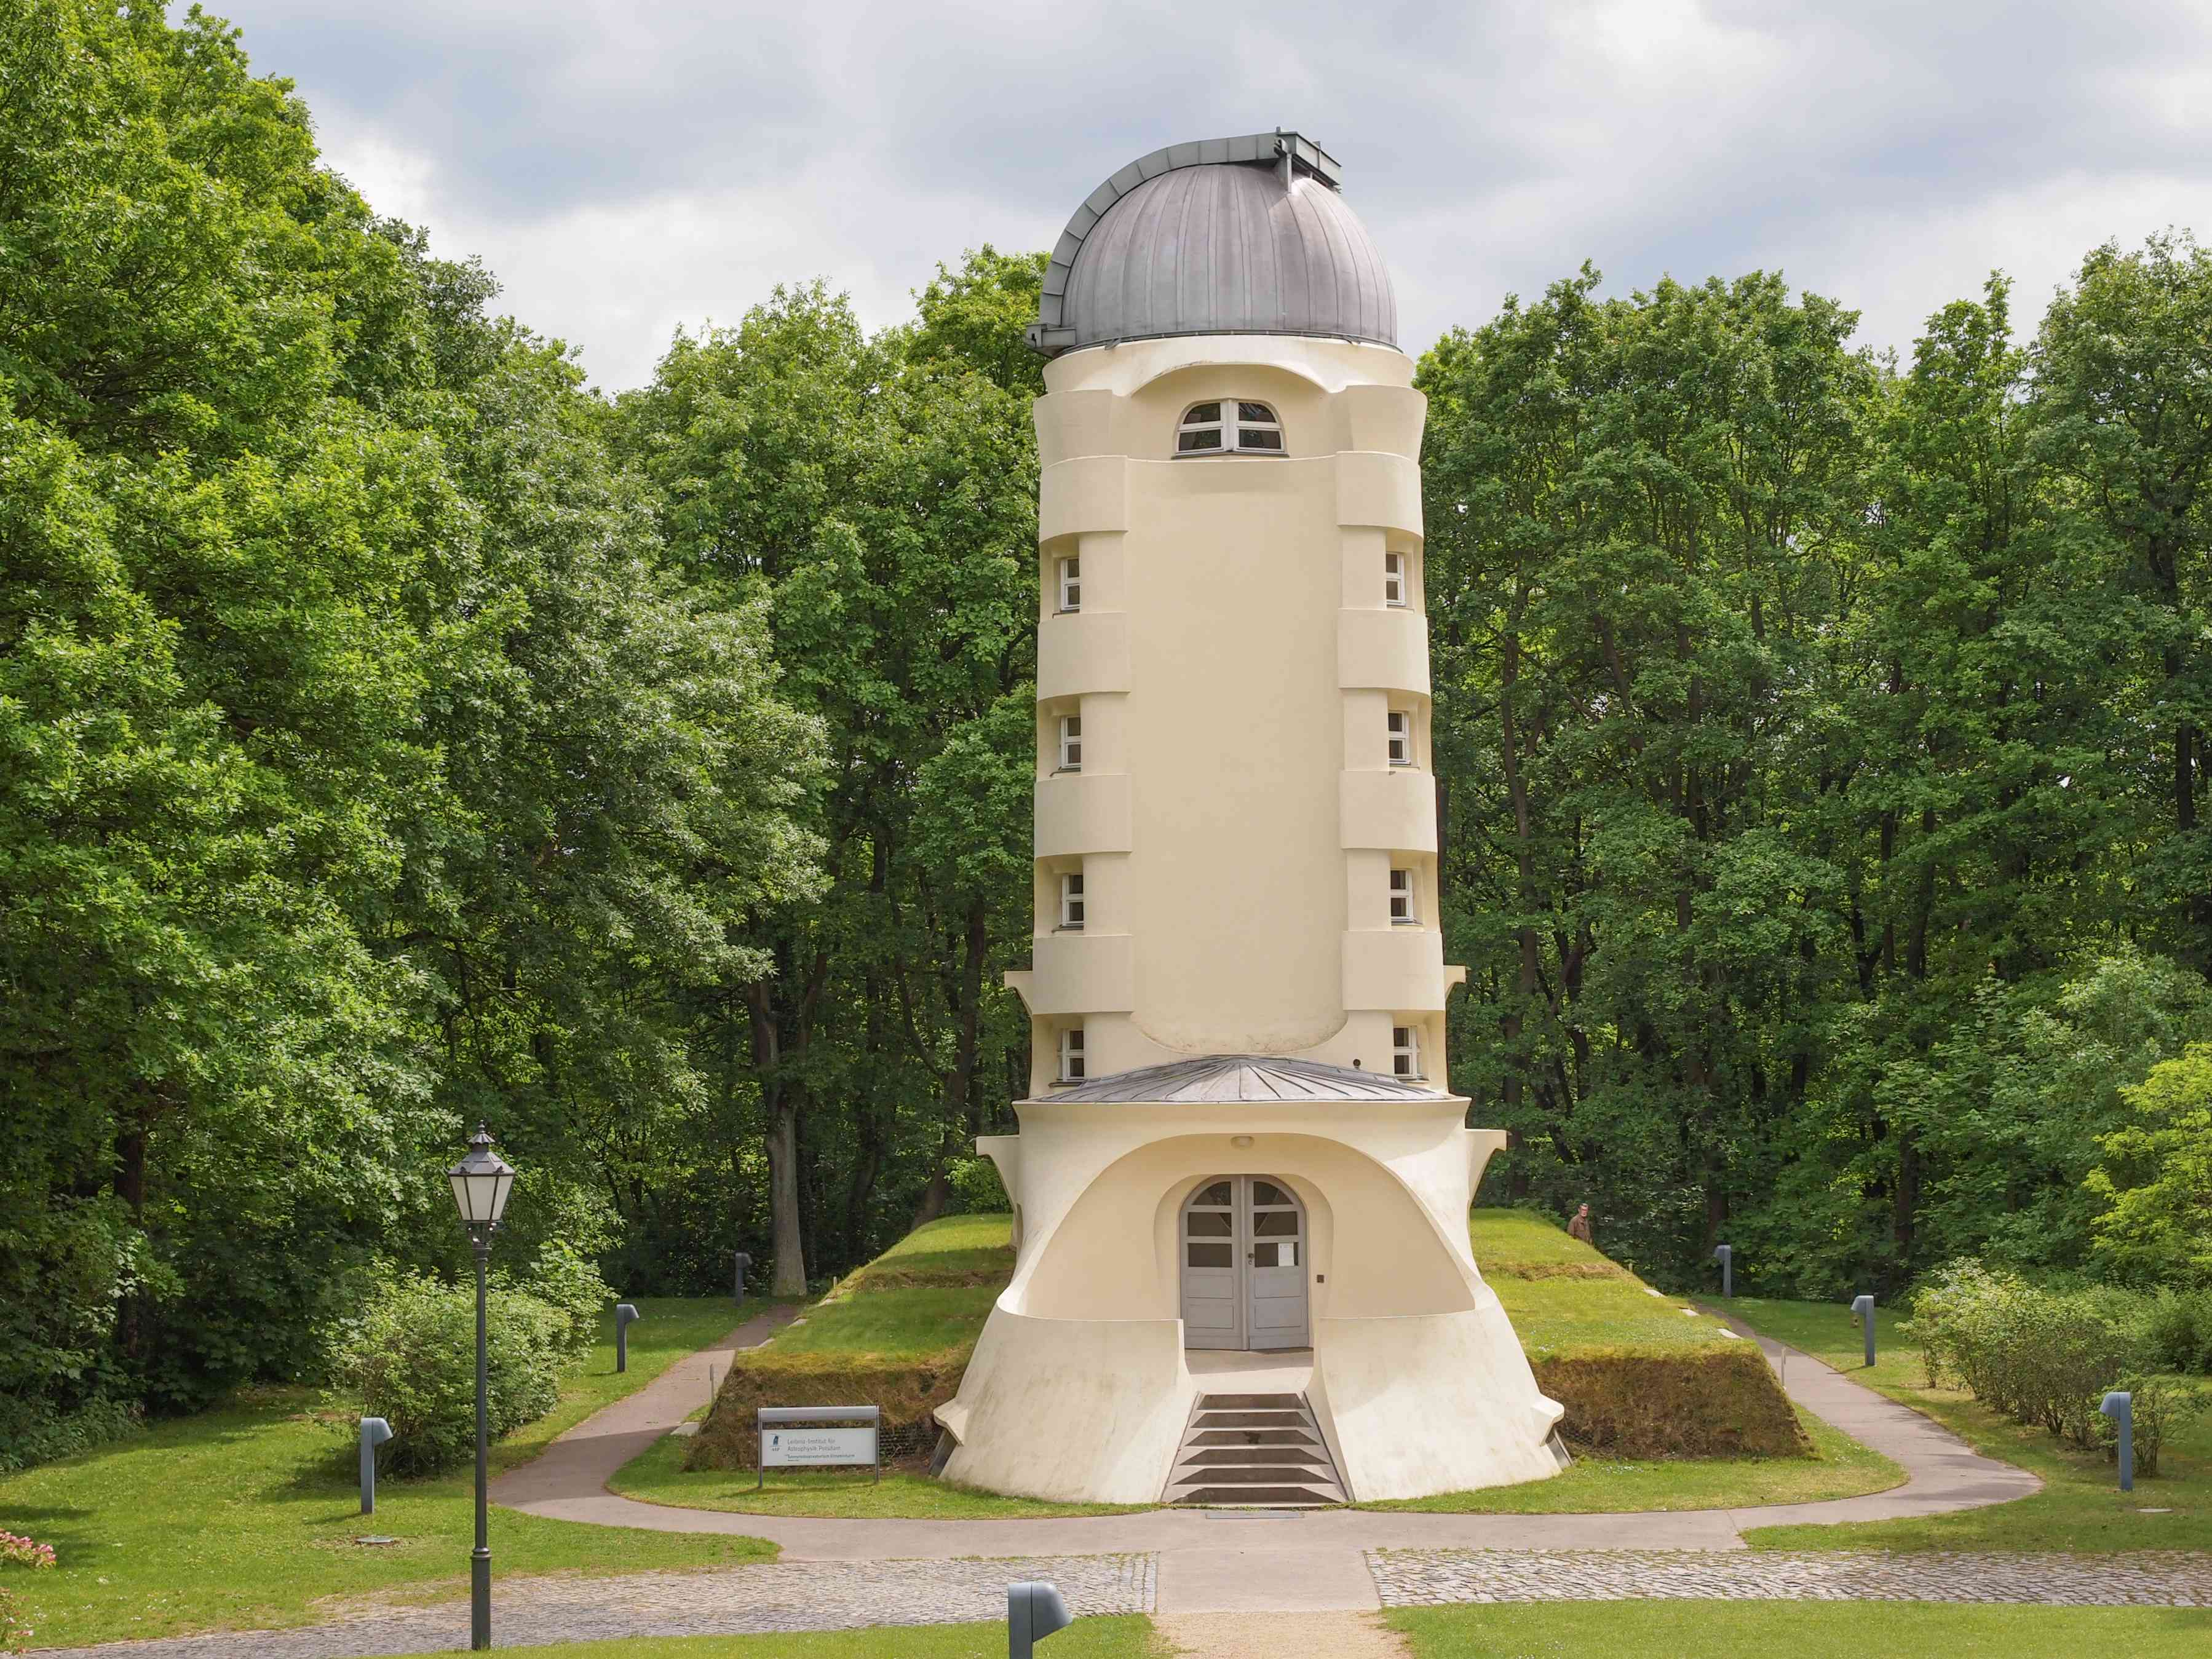 Einstein Tower in surrounded by trees in Potsdam, Germany